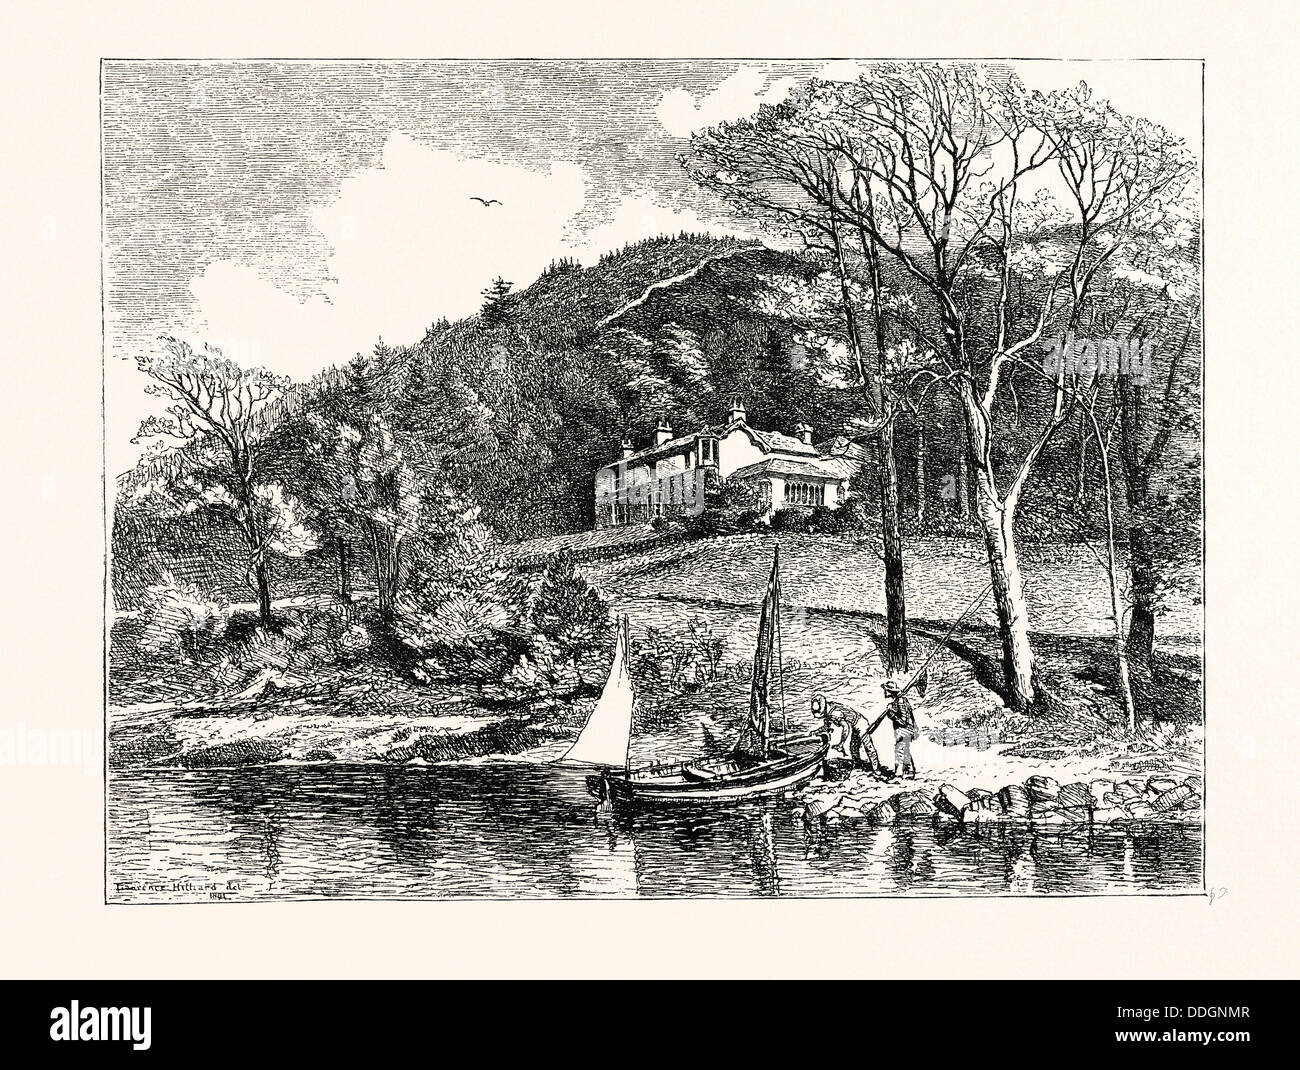 MR. RUSKIN'S HOUSE, BRANTWOOD. AFTER A DRAWING BY L.J. HILLIARD. John Ruskin (8 February 1819 20 January 1900) - Stock Image